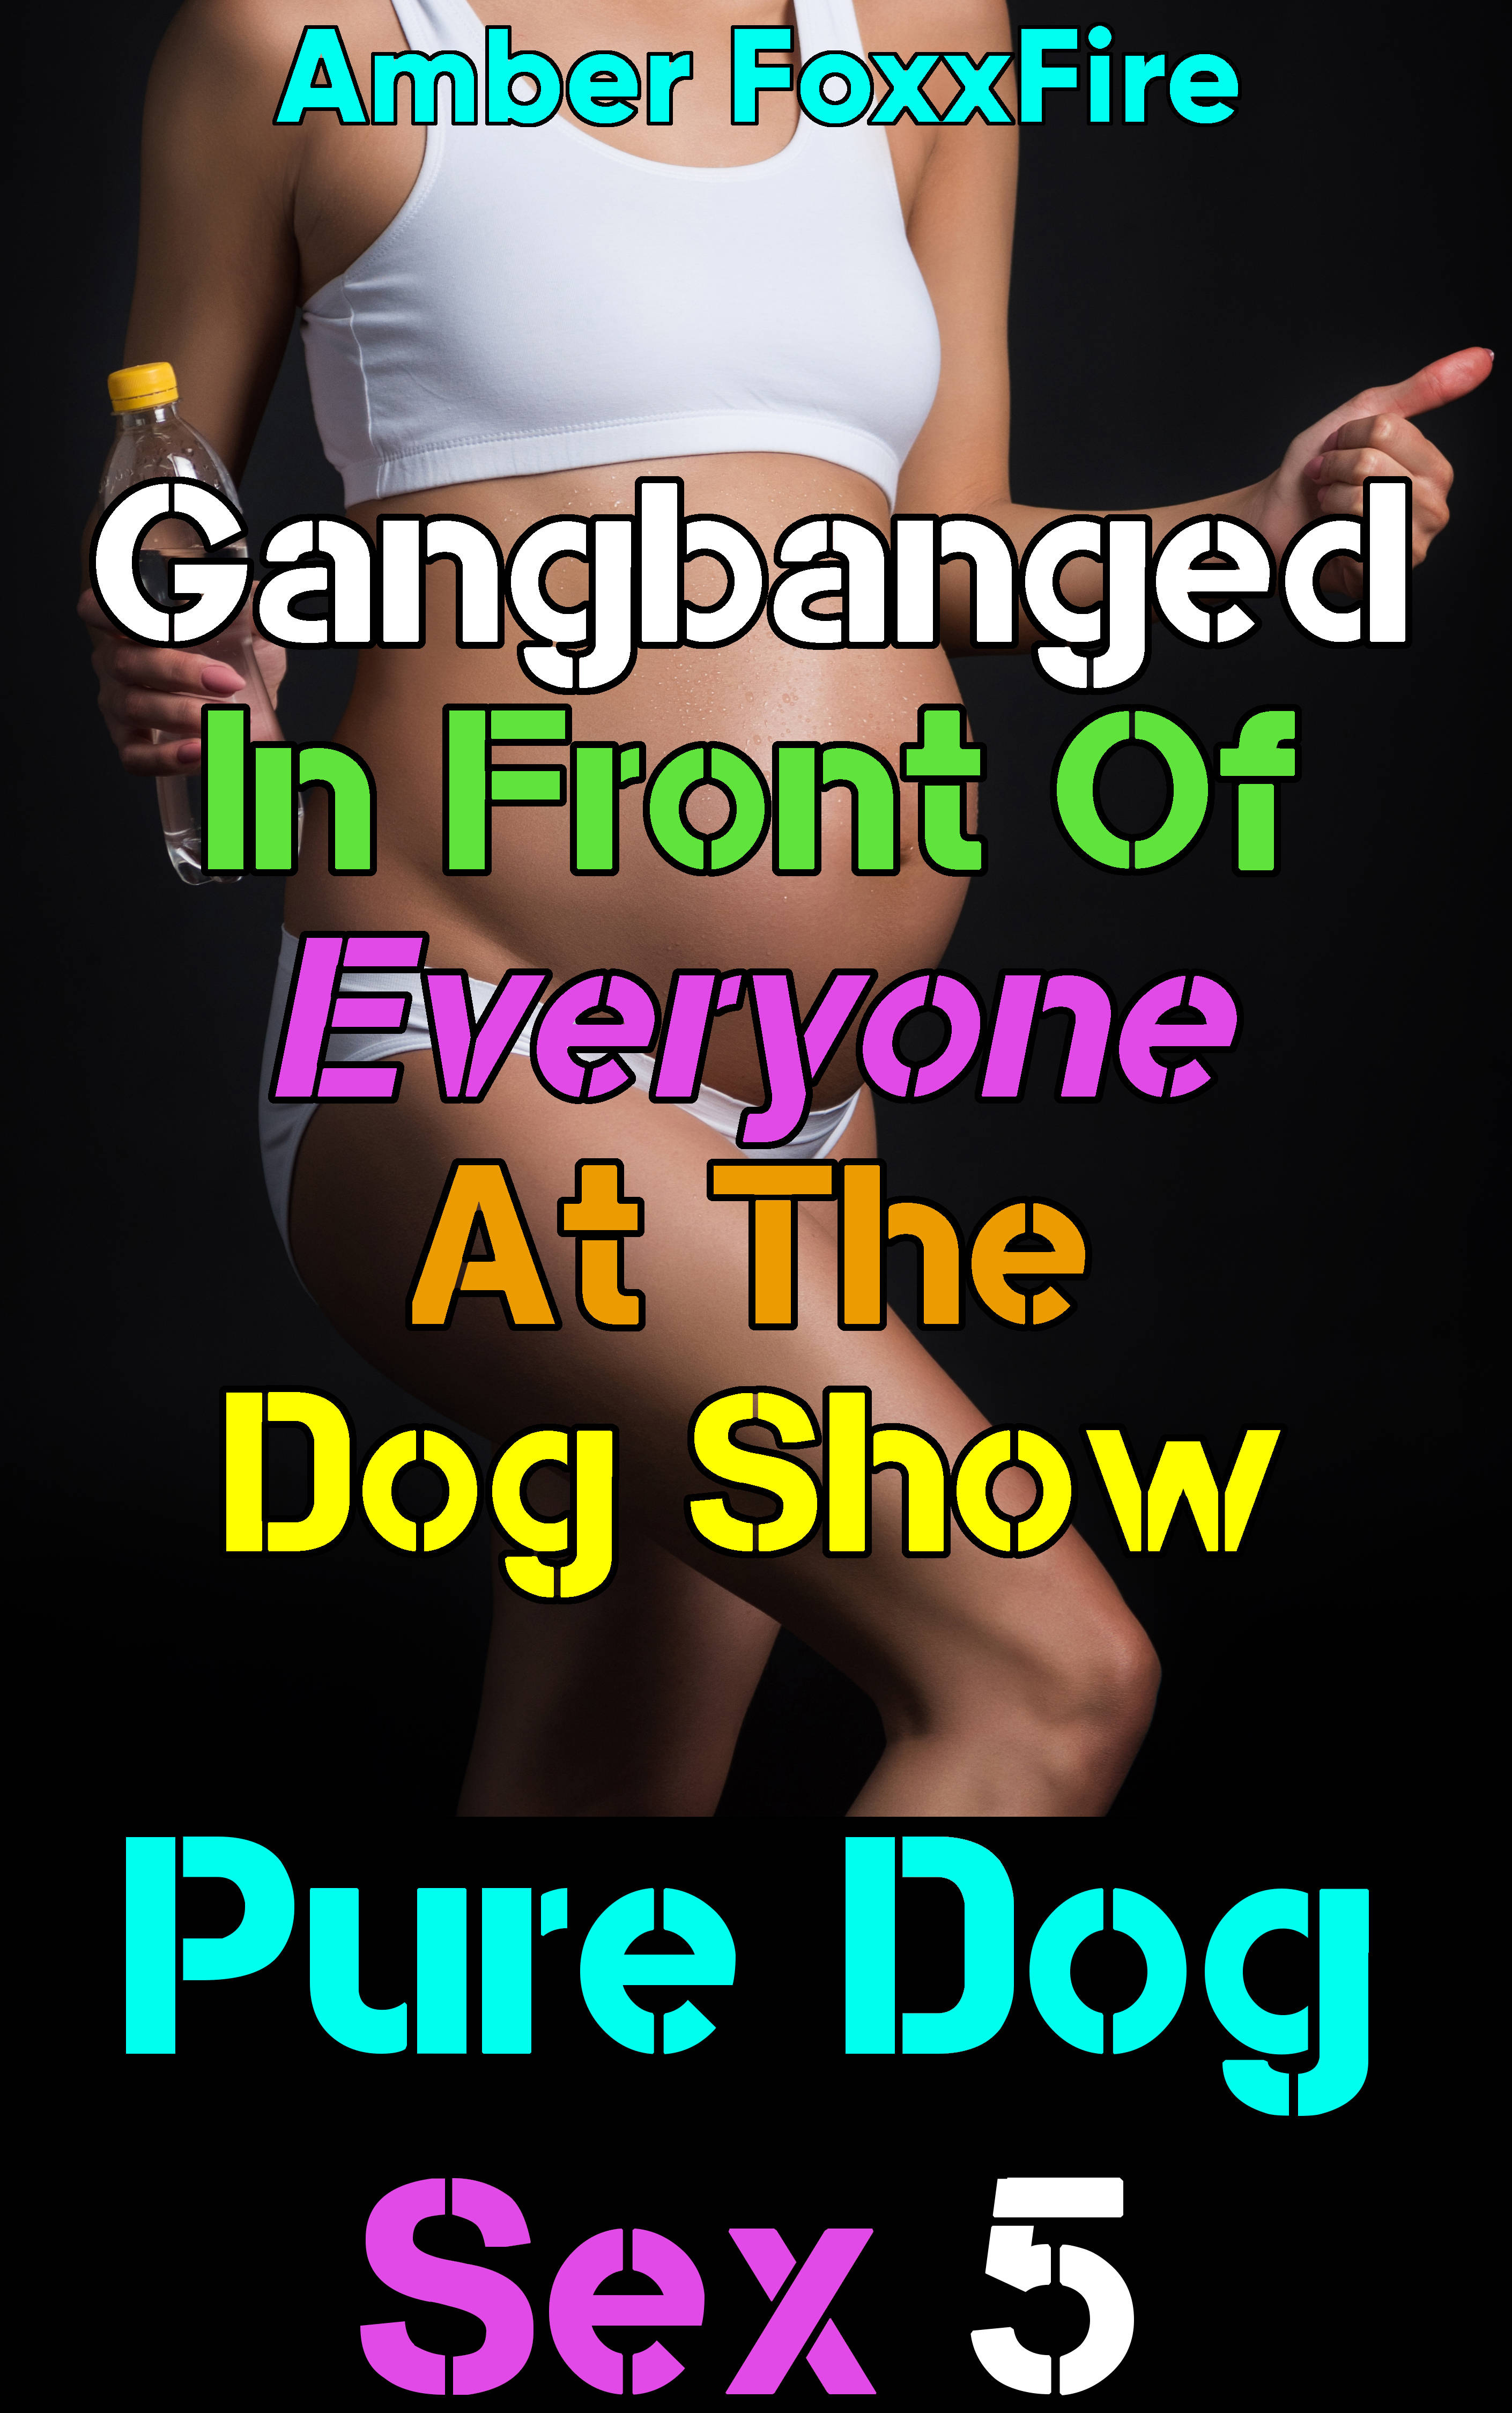 Pure Dog Sex 5: Gangbanged In Front Of Everyone At The Dog Show